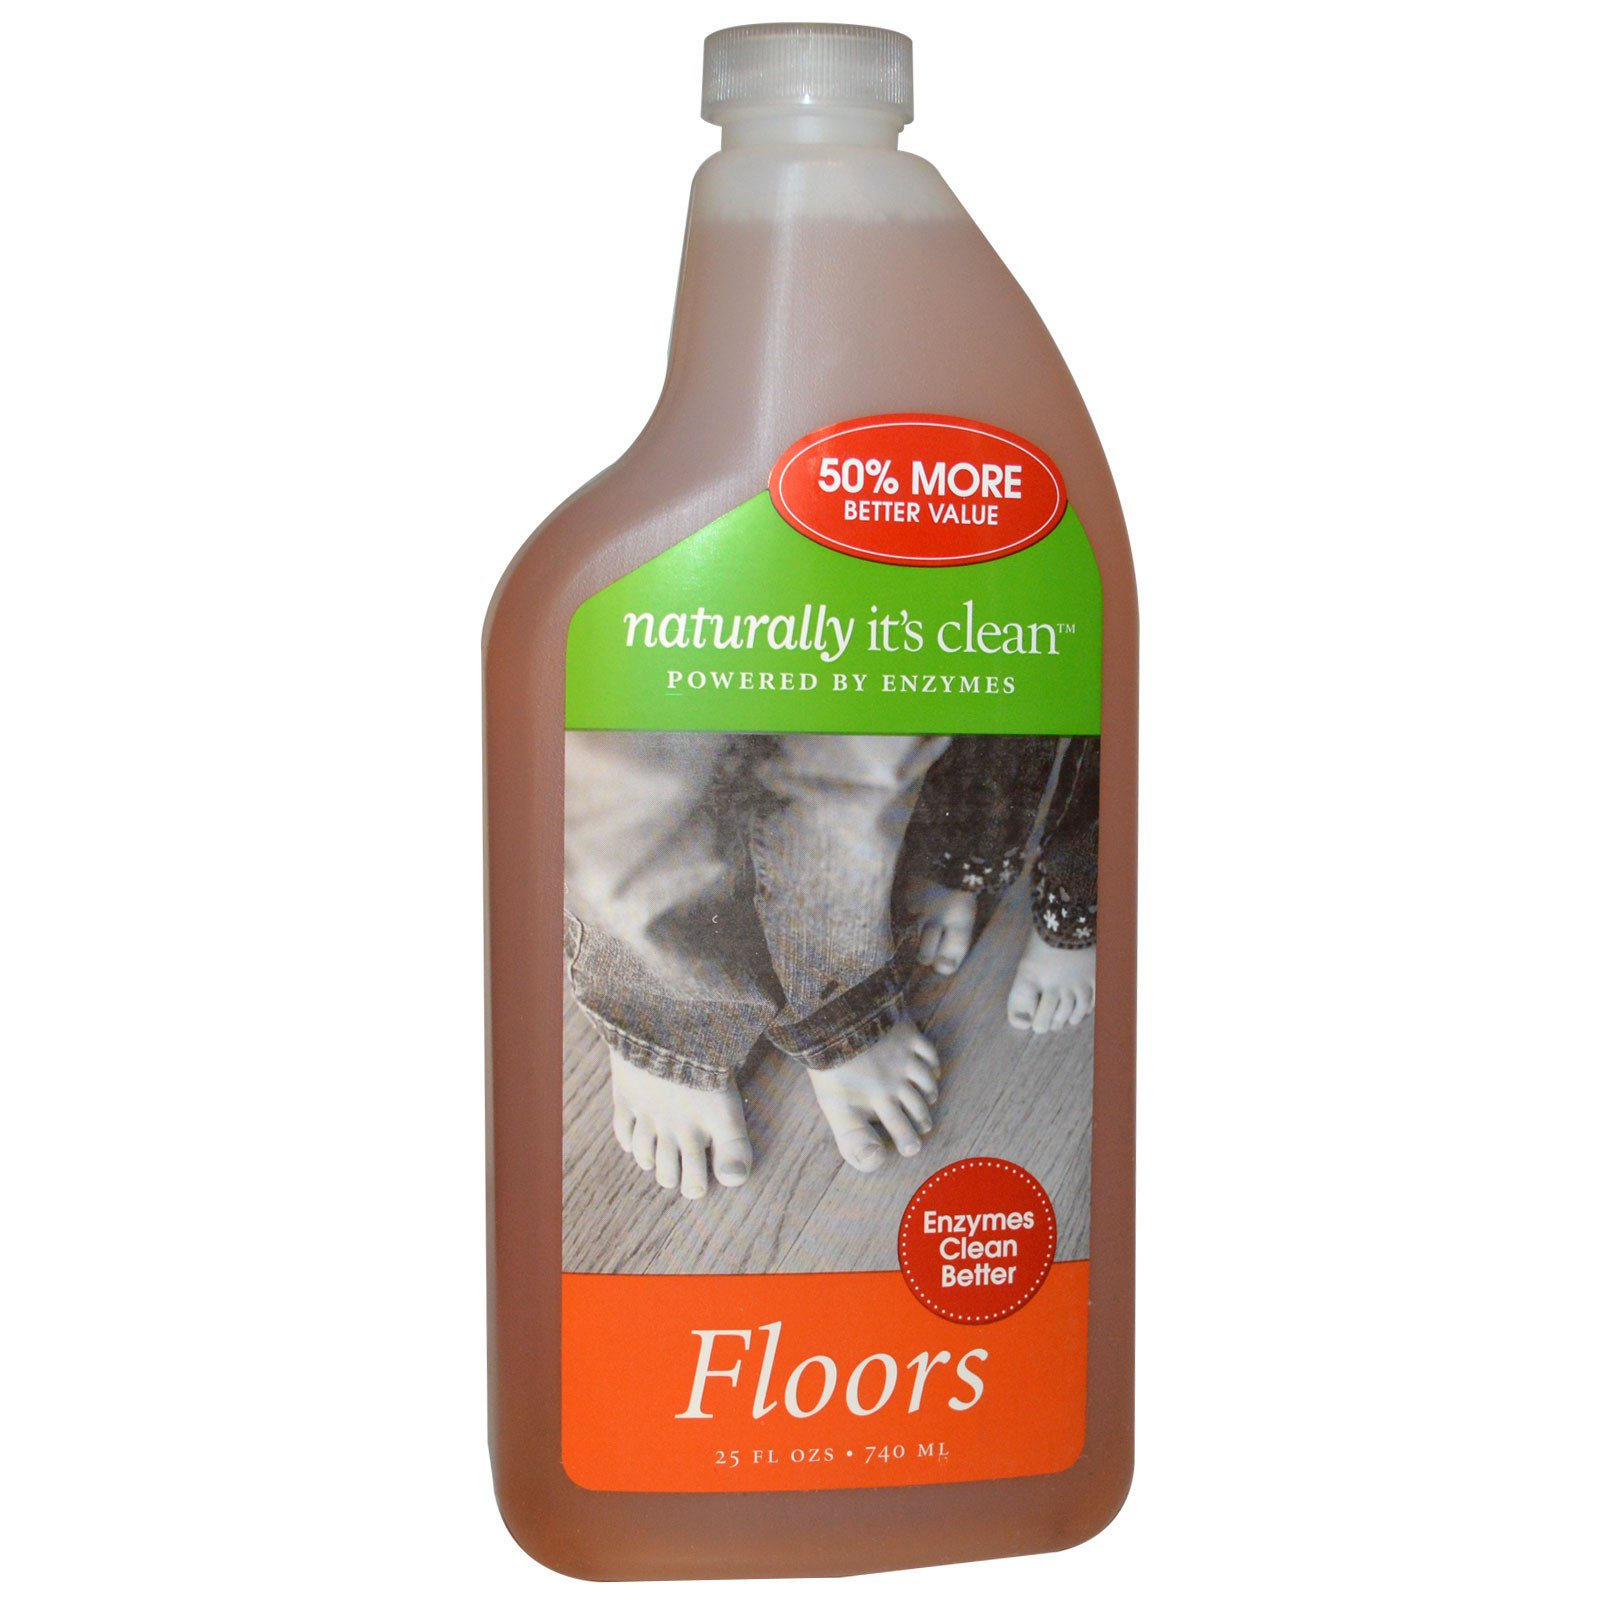 Clean Floors 25 Fl Oz 740 Ml